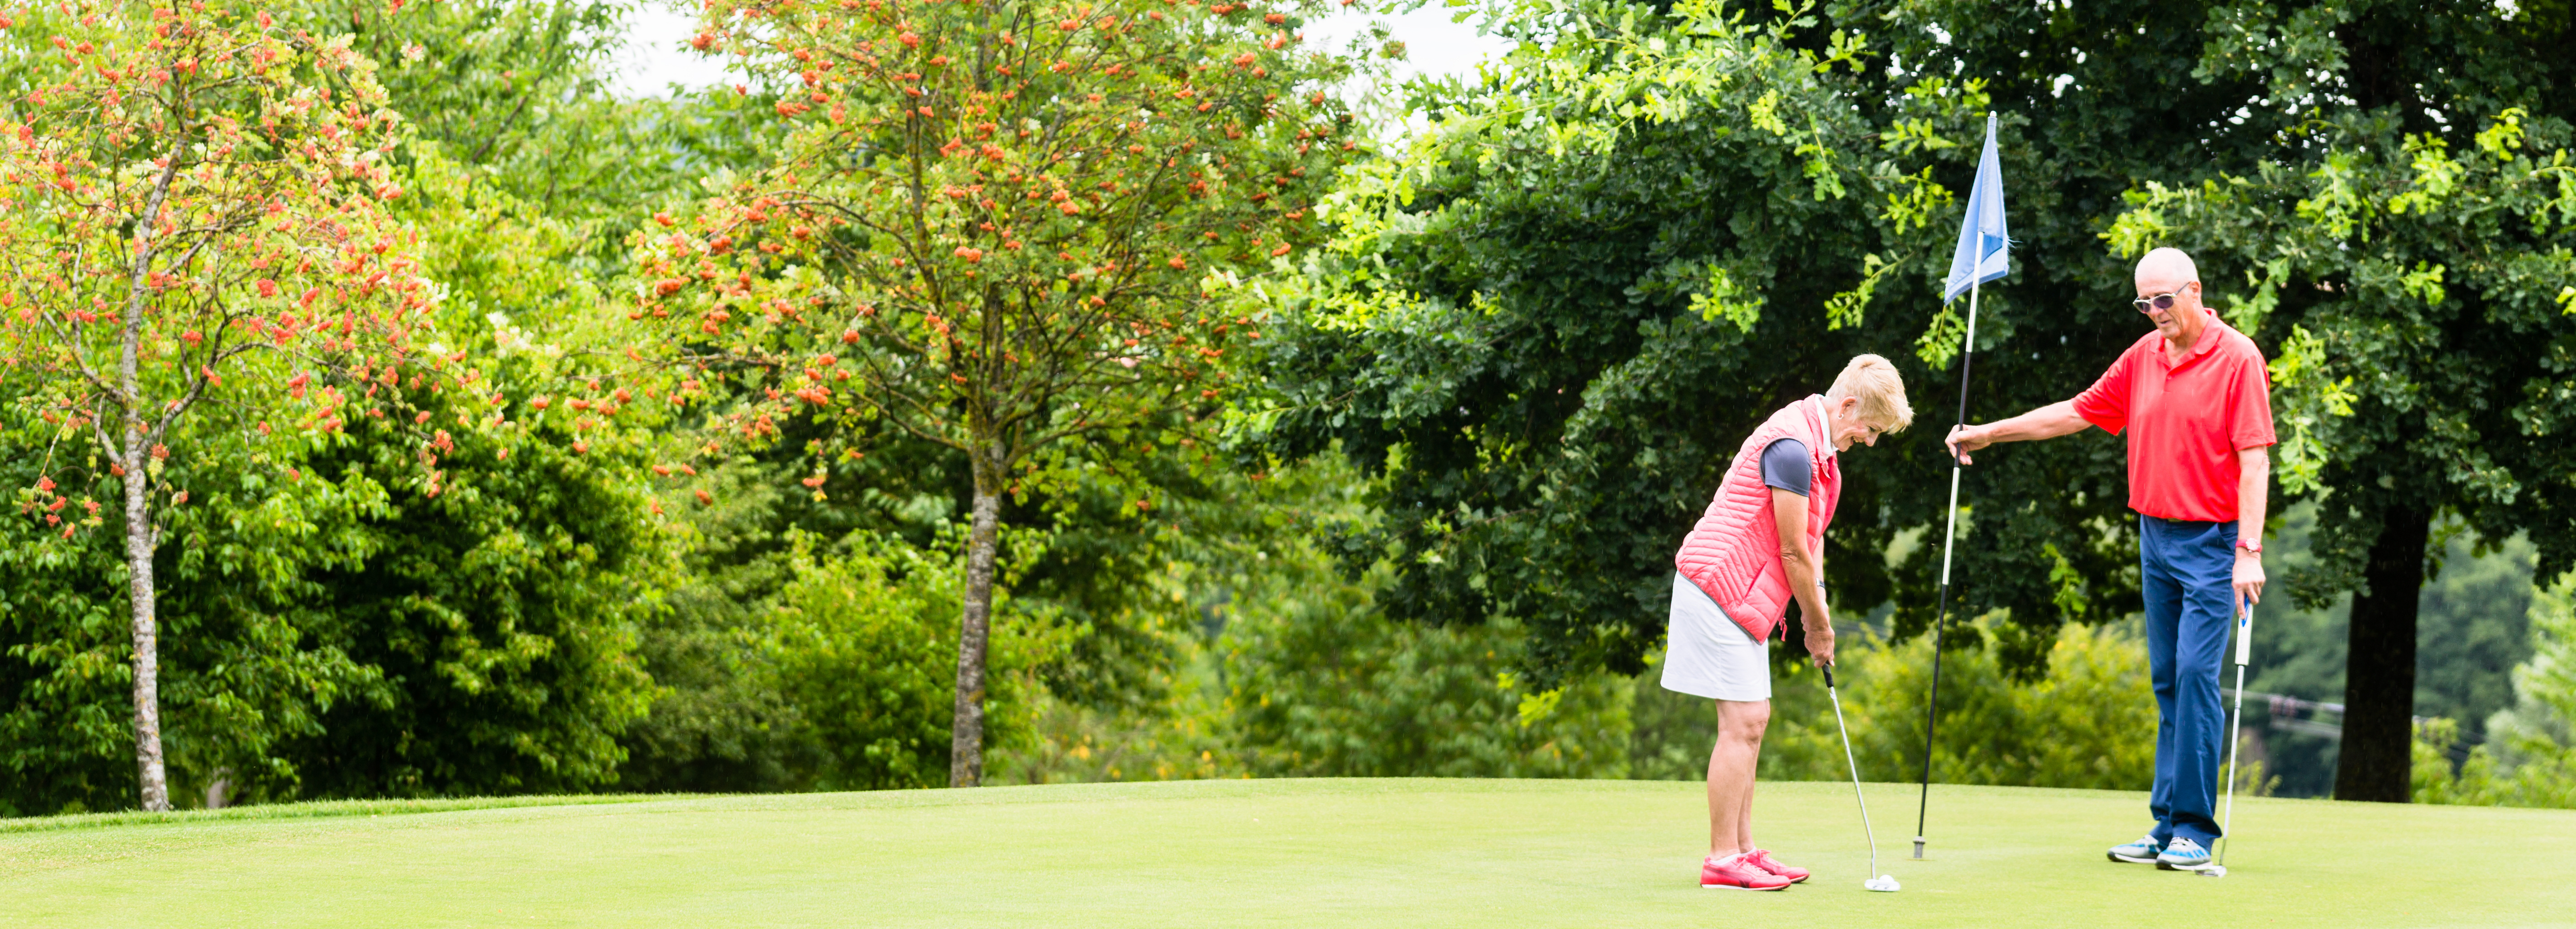 An image of a senior couple playing golf.